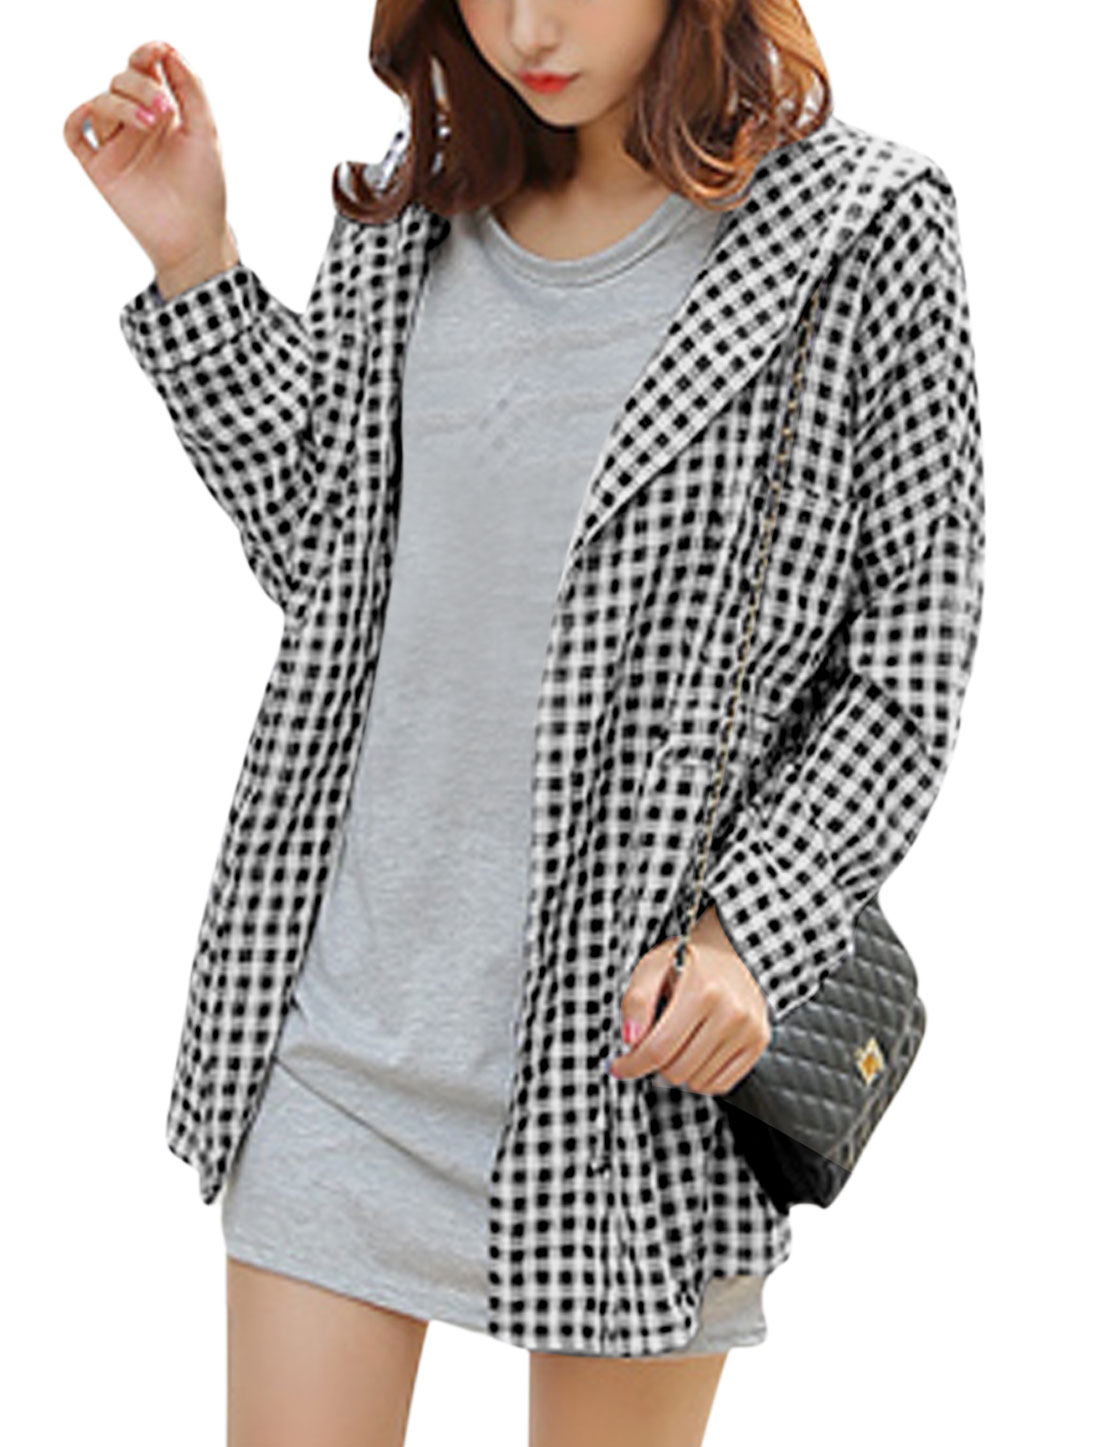 Women Plaids Pattern Drawstring Waist Hoodie Black White M